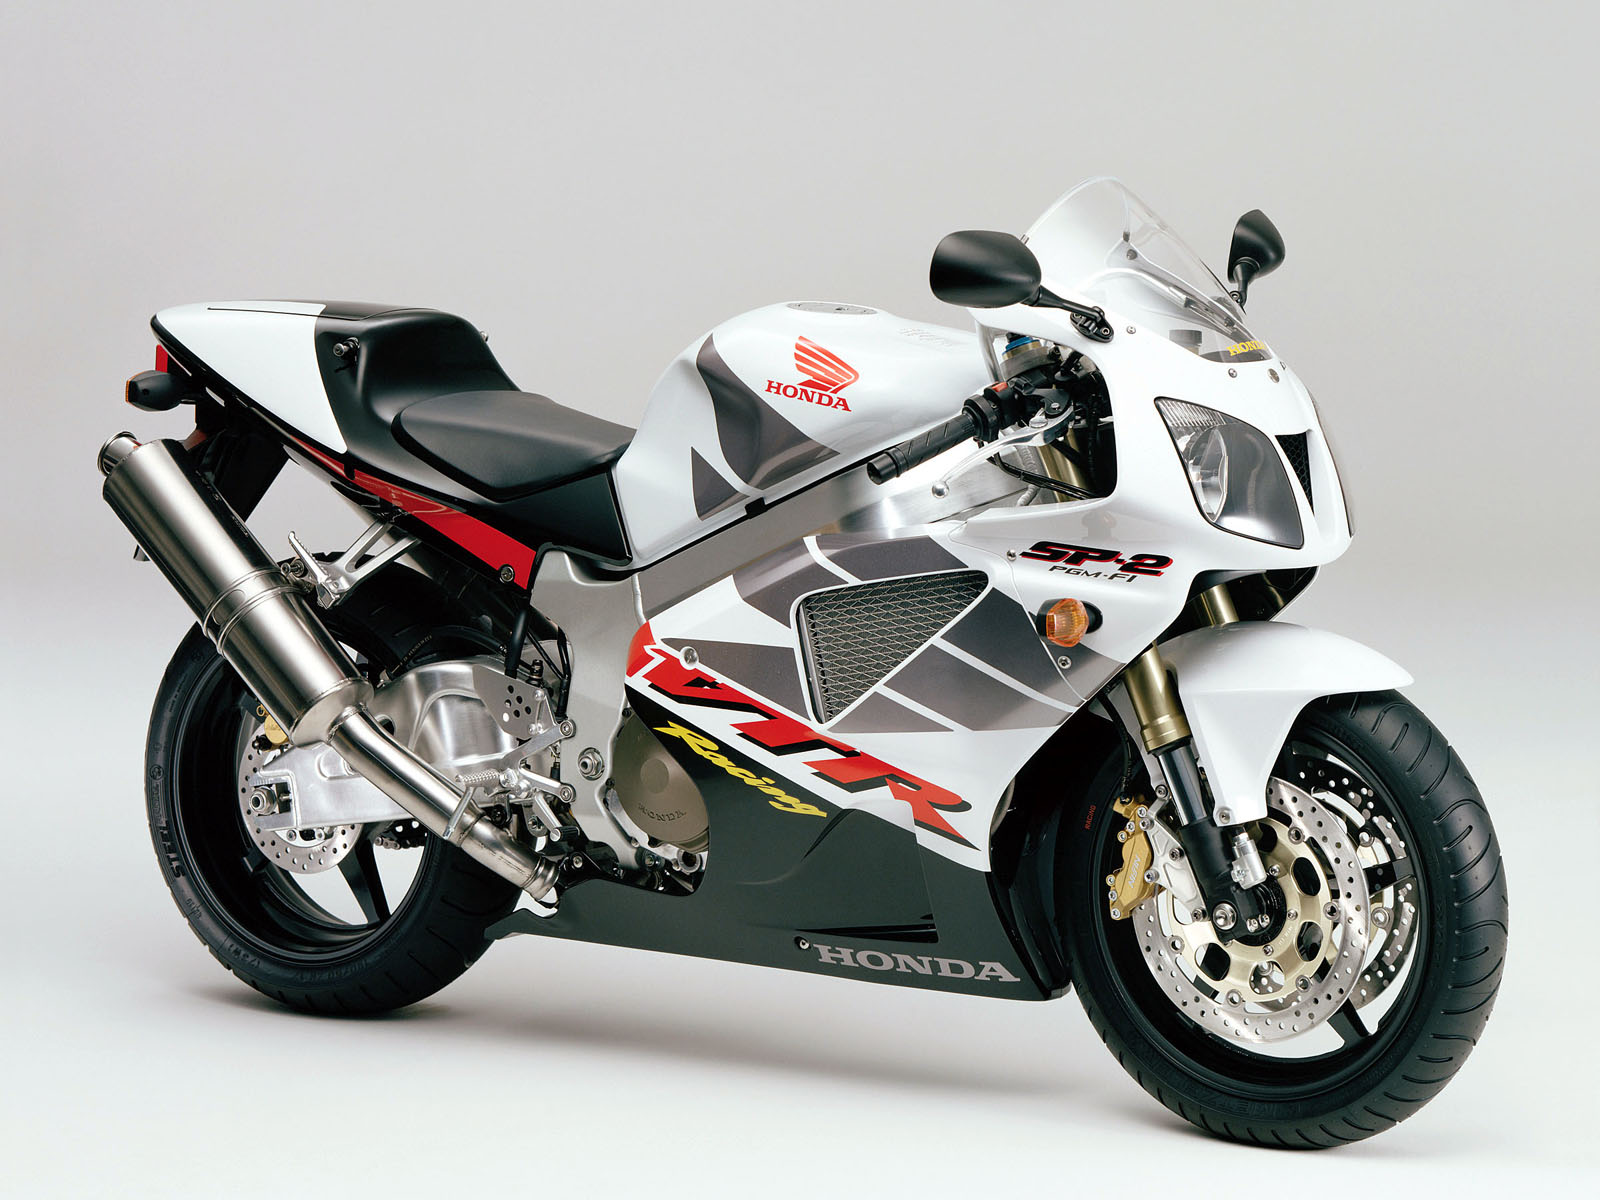 Bike N Bikes All About 09 17 11 Honda 50cc Sport Sports New 2012 Wallpapers Pictures Amazing Beautifull